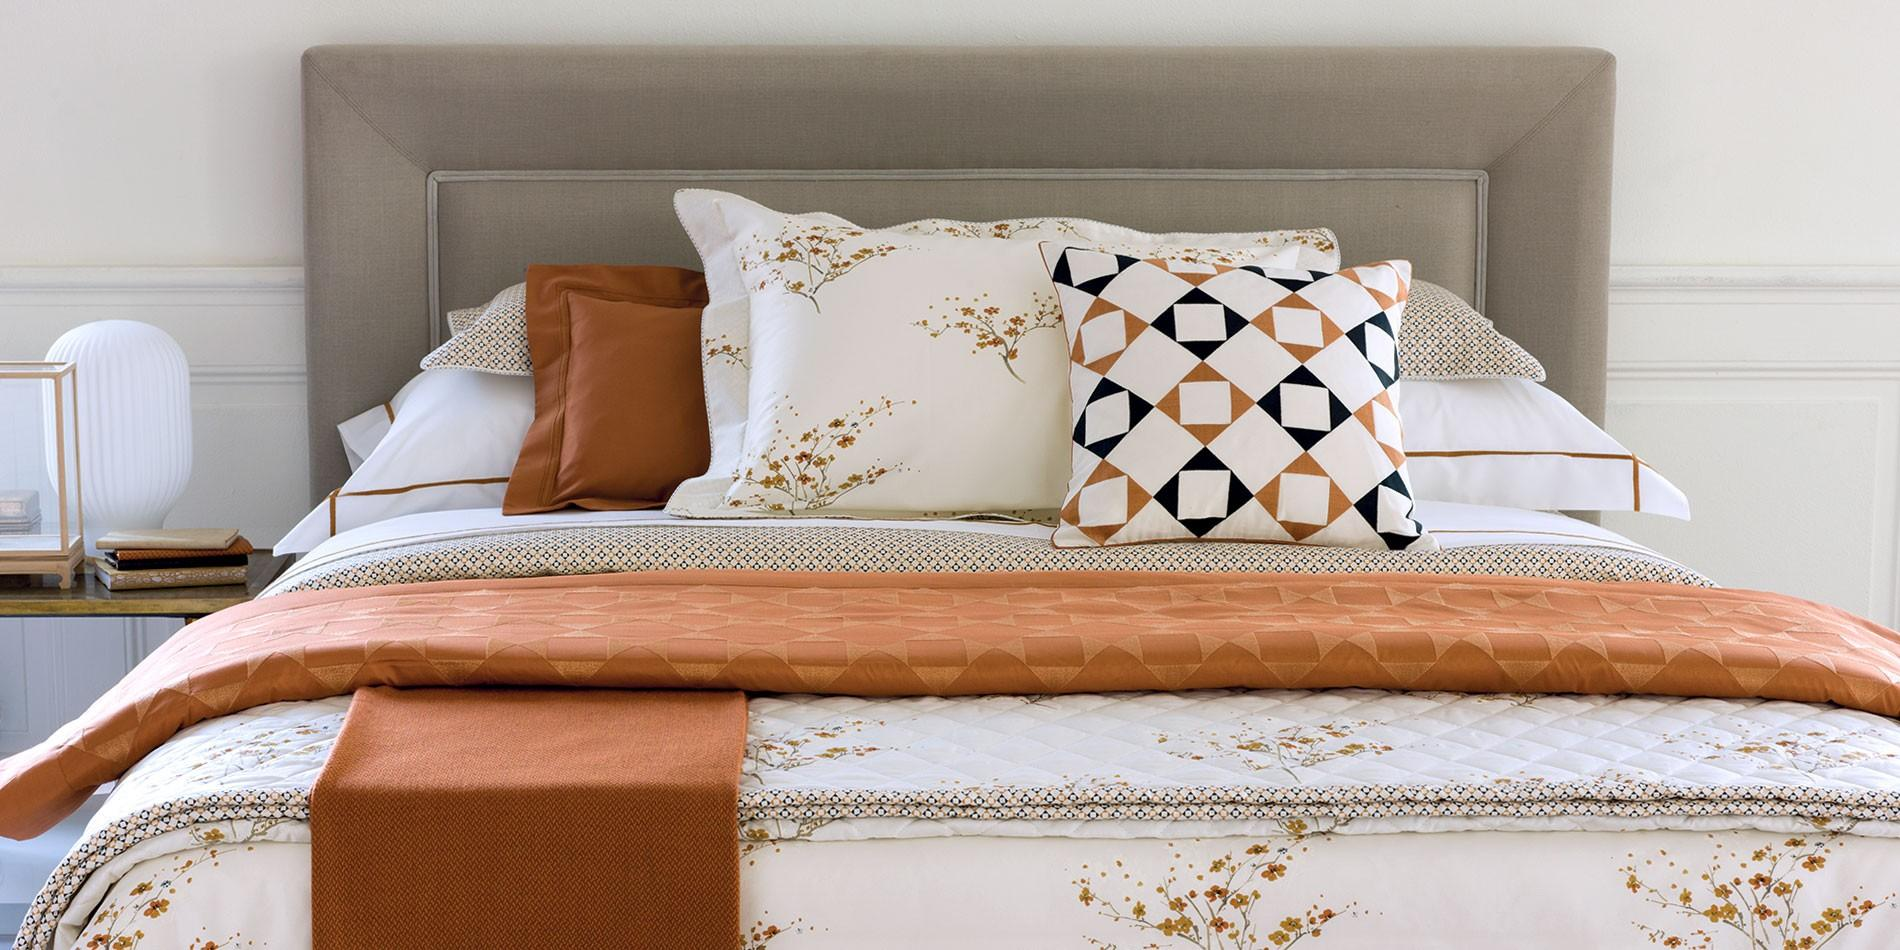 Bedding Needs To Be Soft, Durable And Attractive And To Be All Those  Things, Consumers Need To Find A Company That Emphasizes The Importance Of  Using High ...